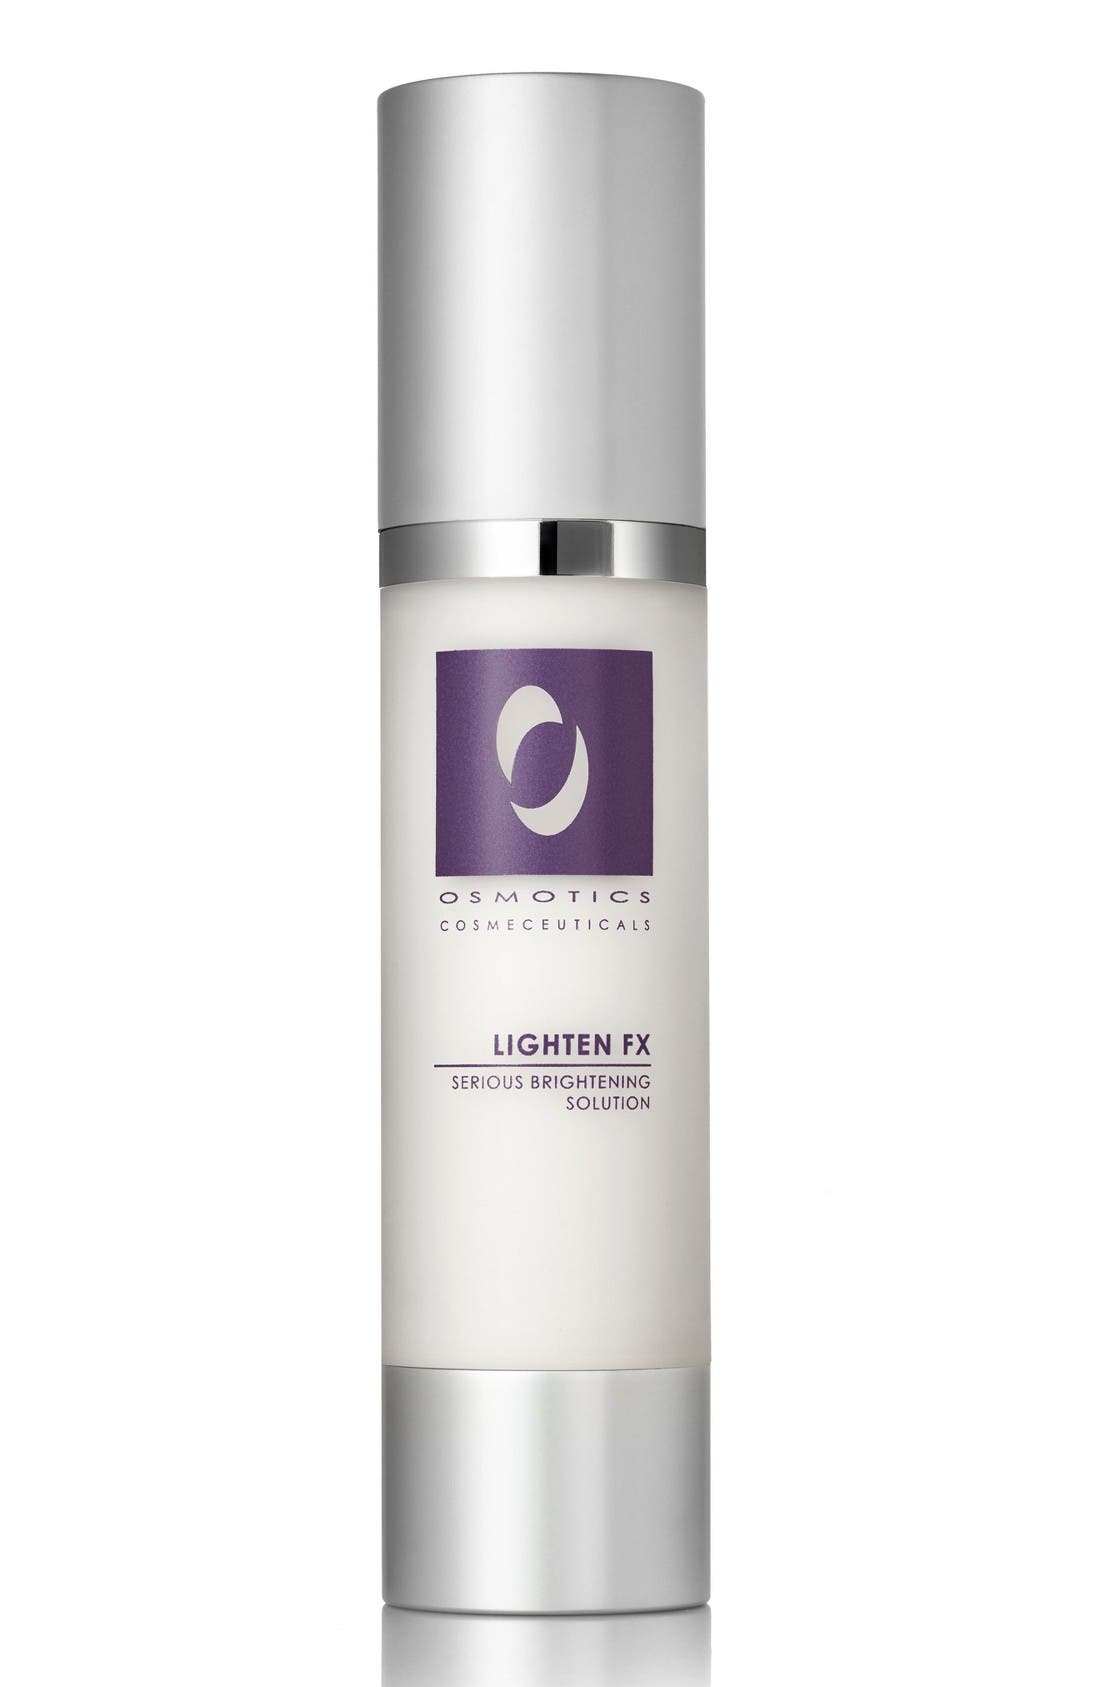 Alternate Image 1 Selected - Osmotics Cosmeceuticals Lighten FX Serious Brightening Solution